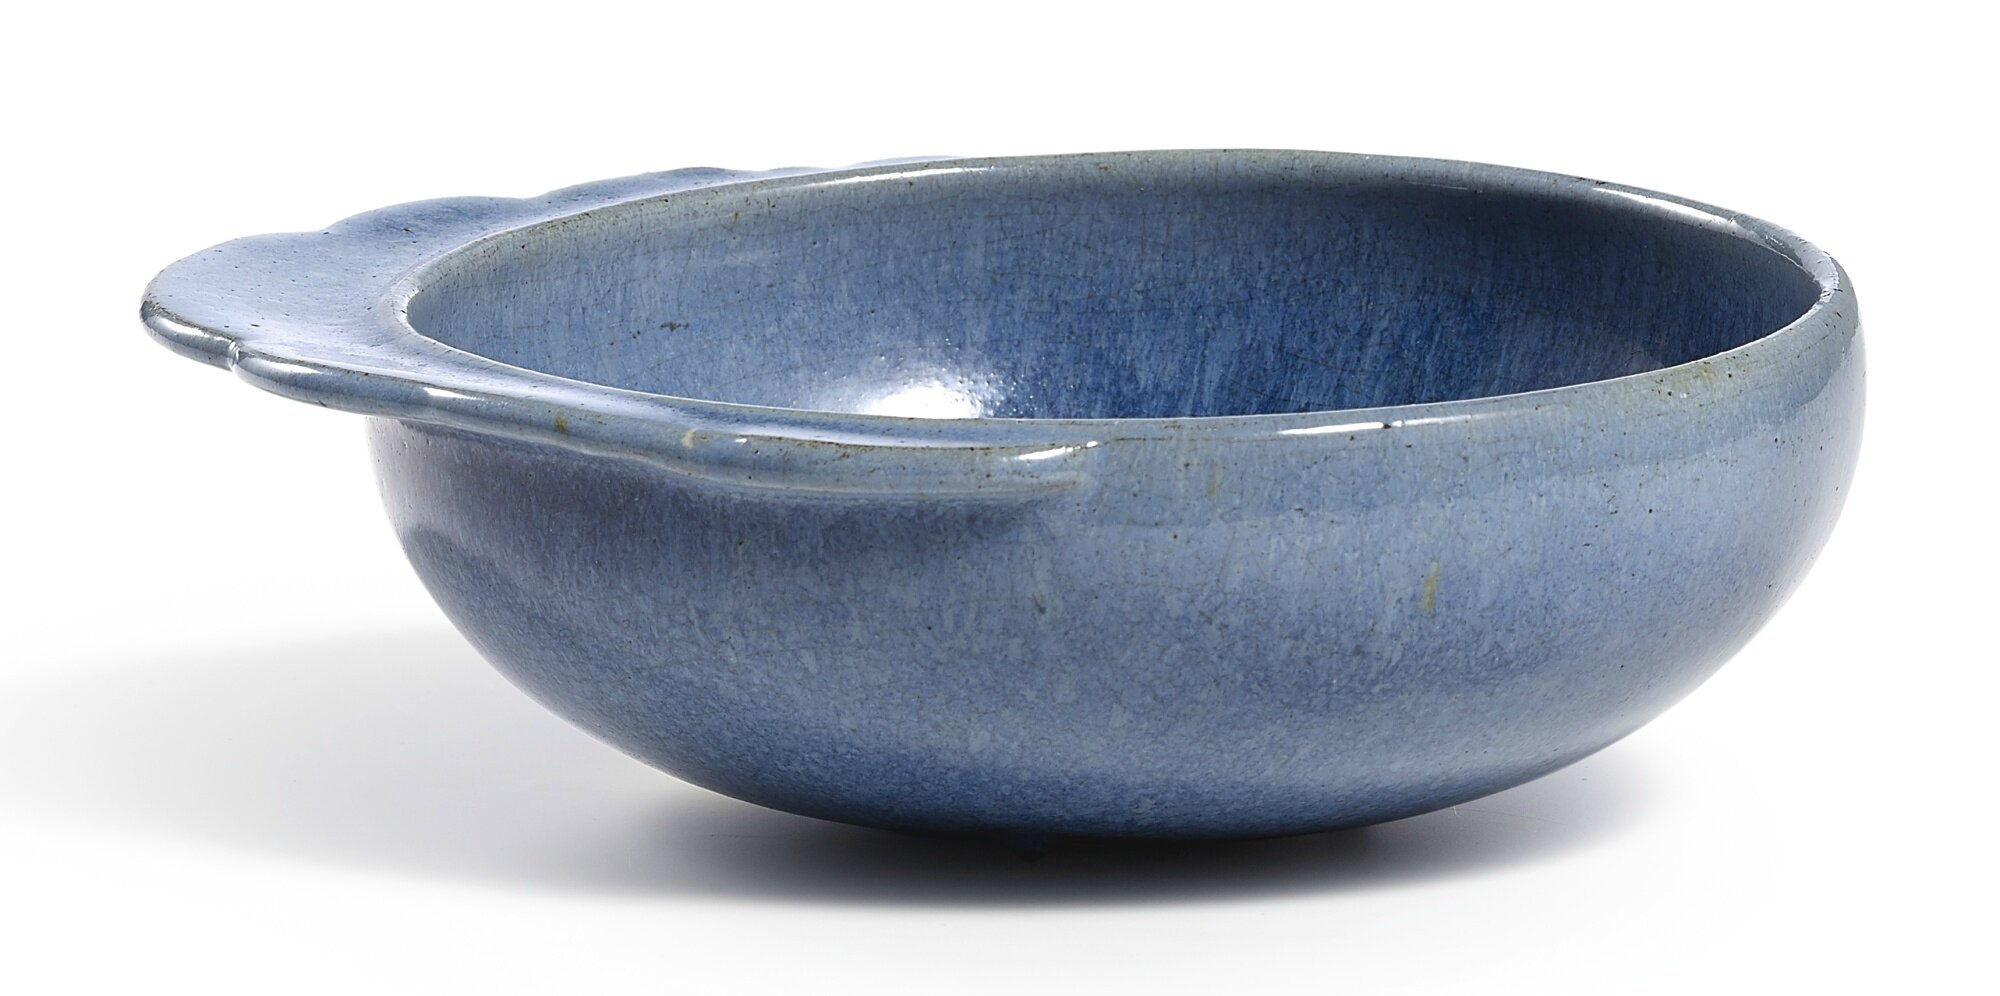 A rare 'jun-imitation' handled washer, late Ming dynasty